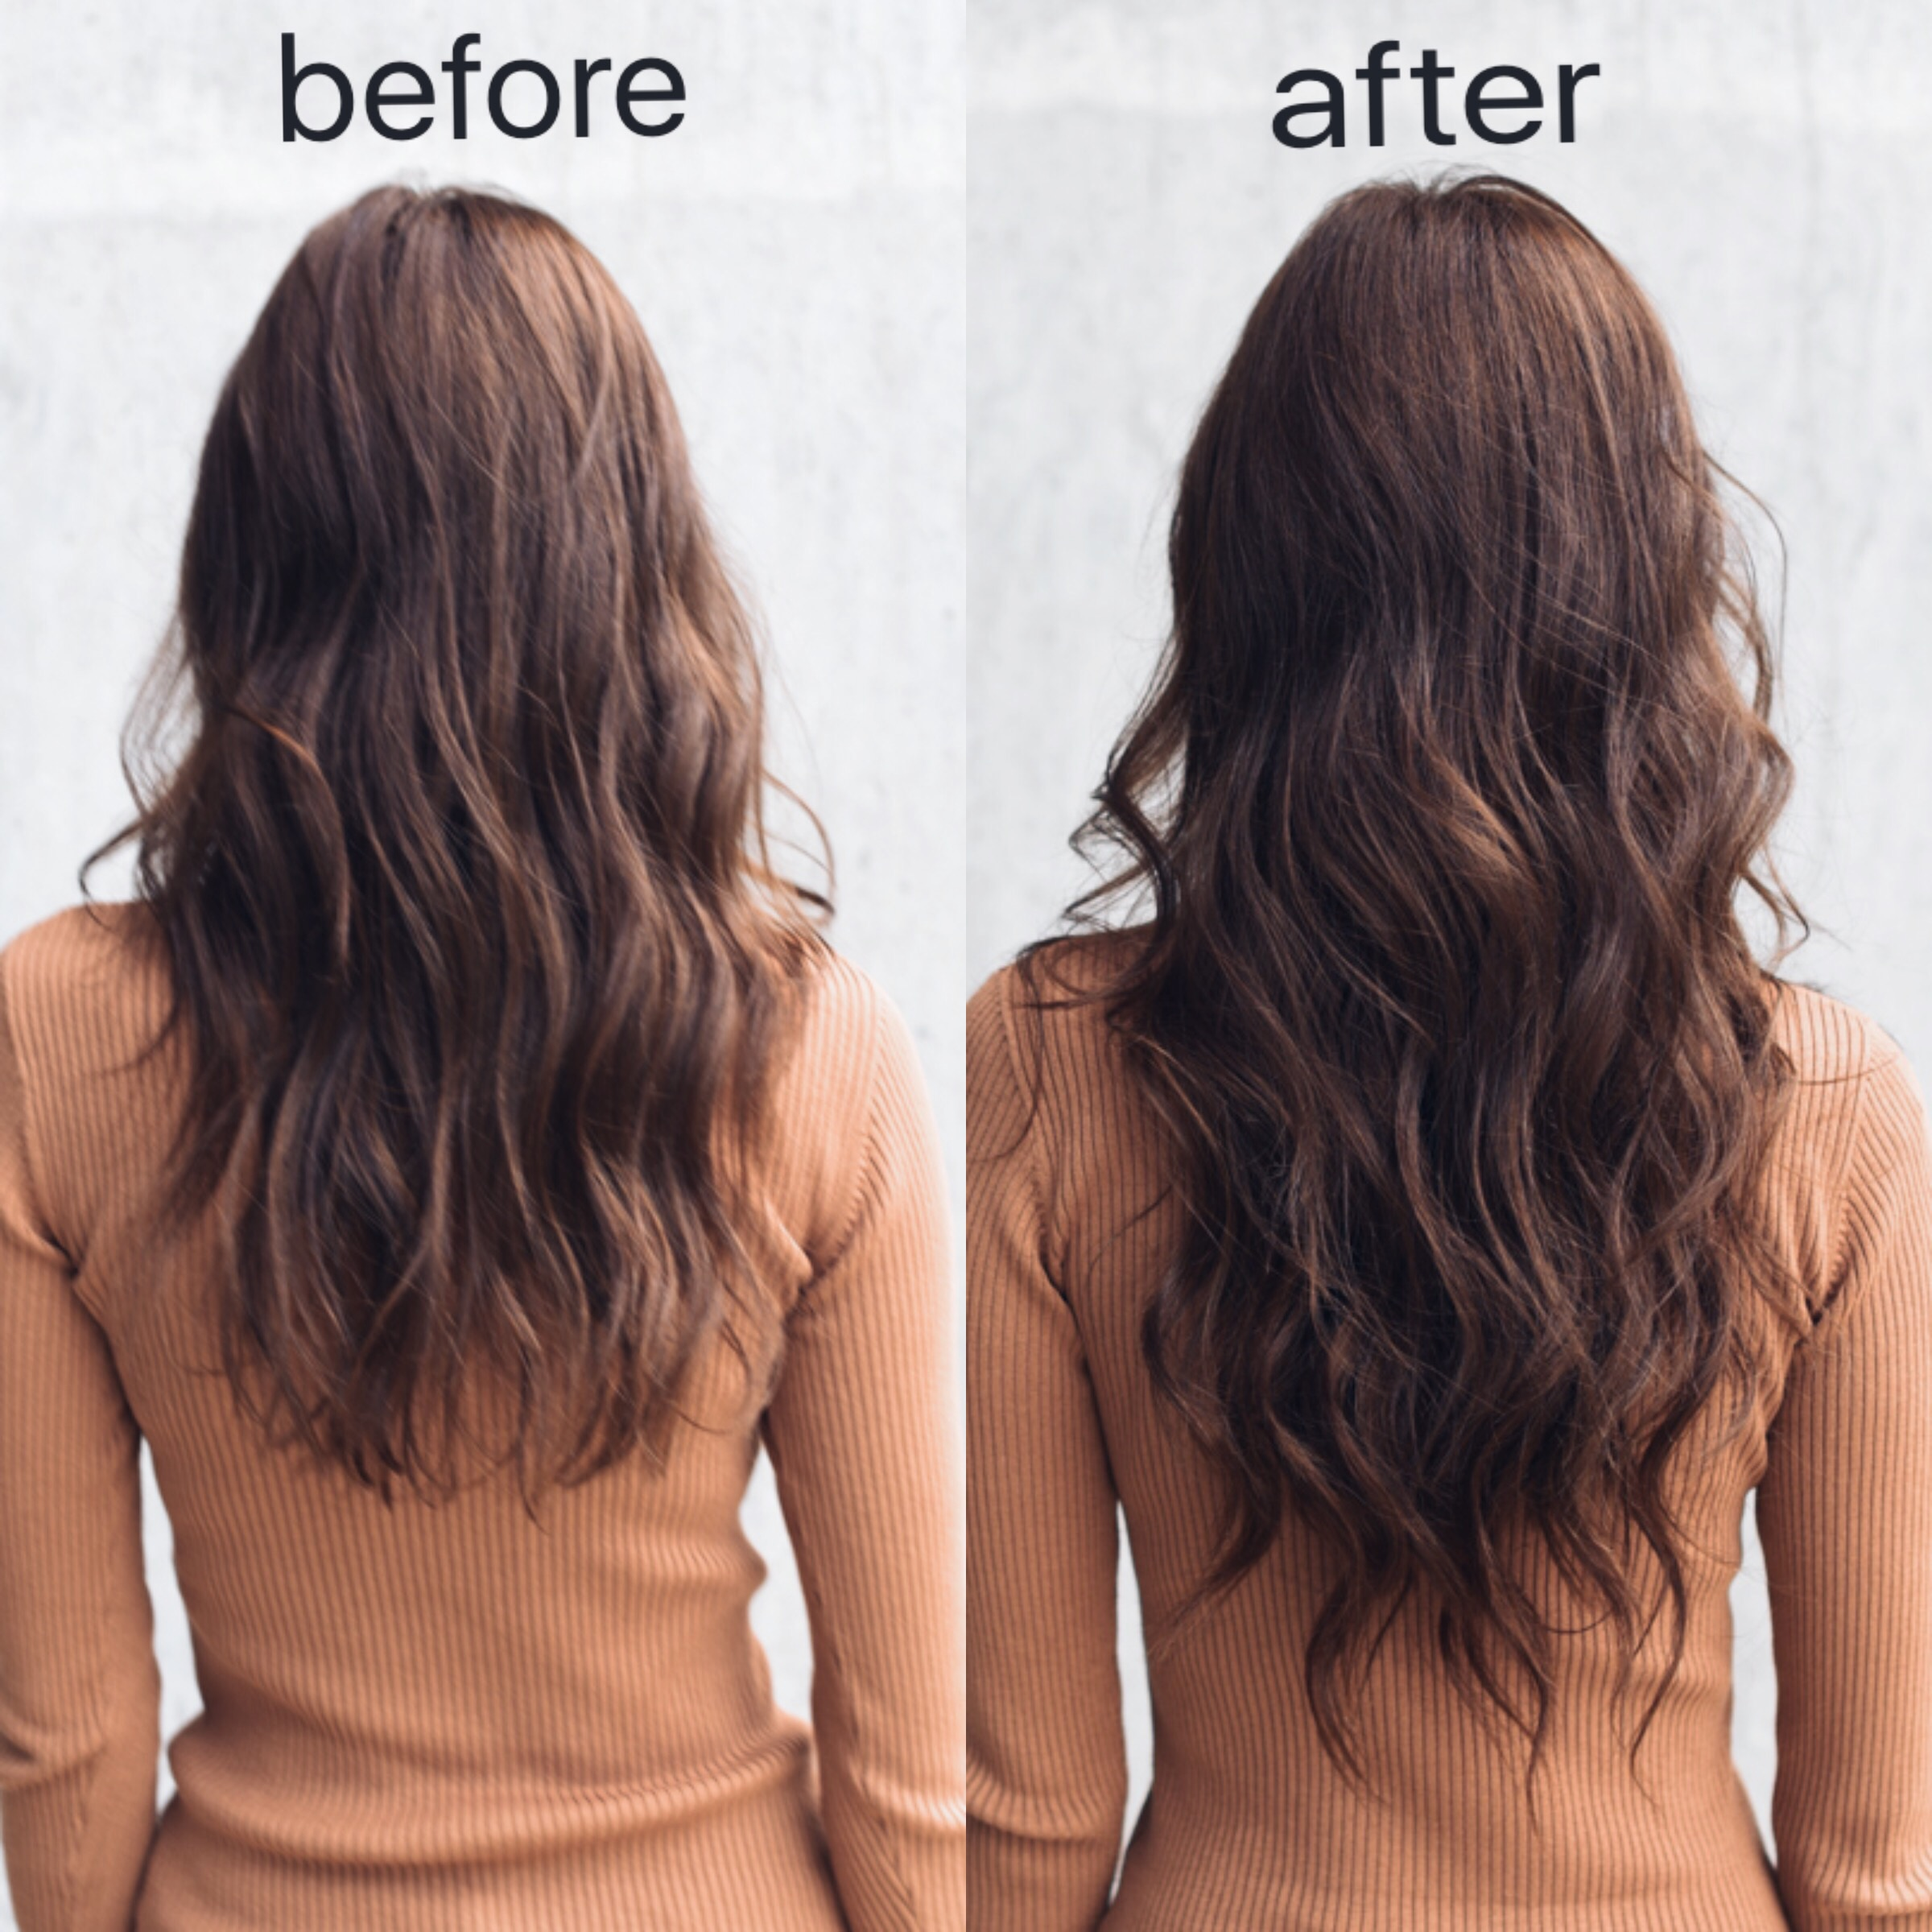 Clip in hair extension tips my view in heels clip in hair extension tips before and after pmusecretfo Images